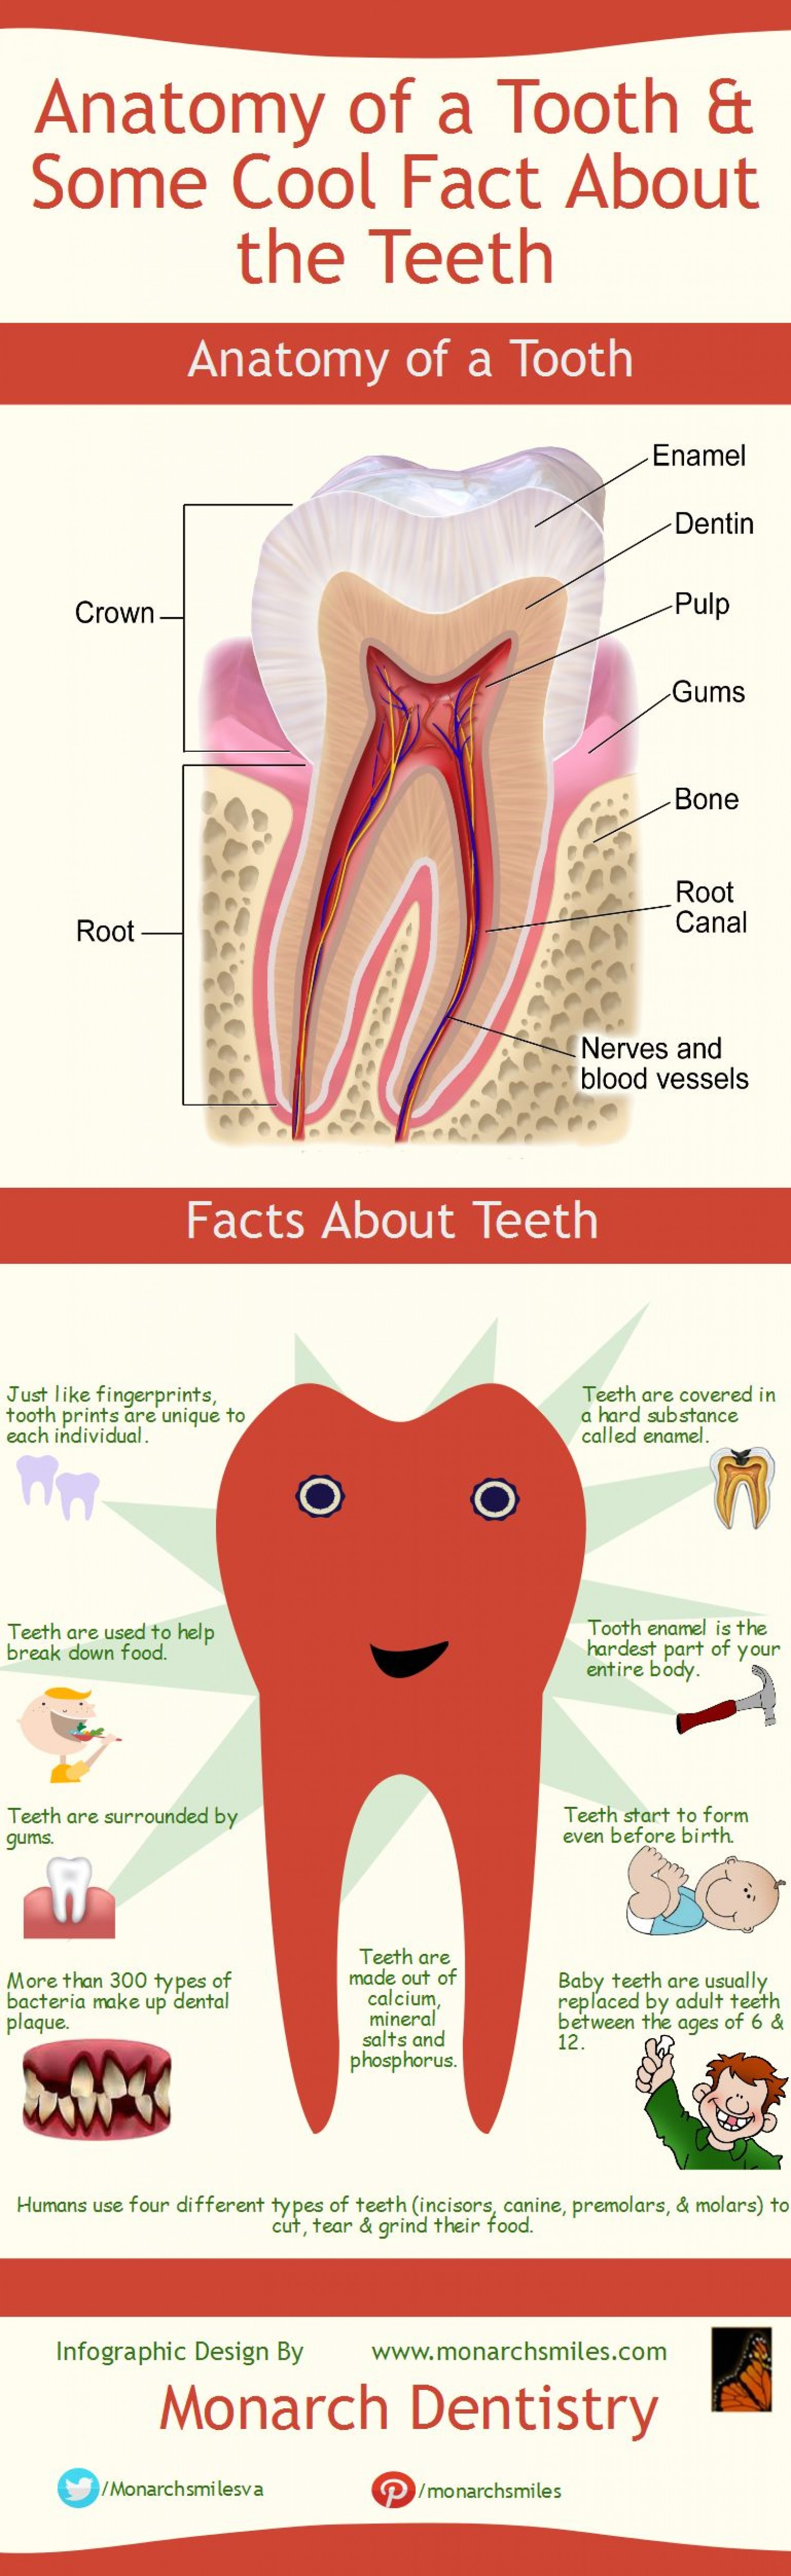 Anatomy Of A Tooth Some Cool Fact About The Teeth Infographic